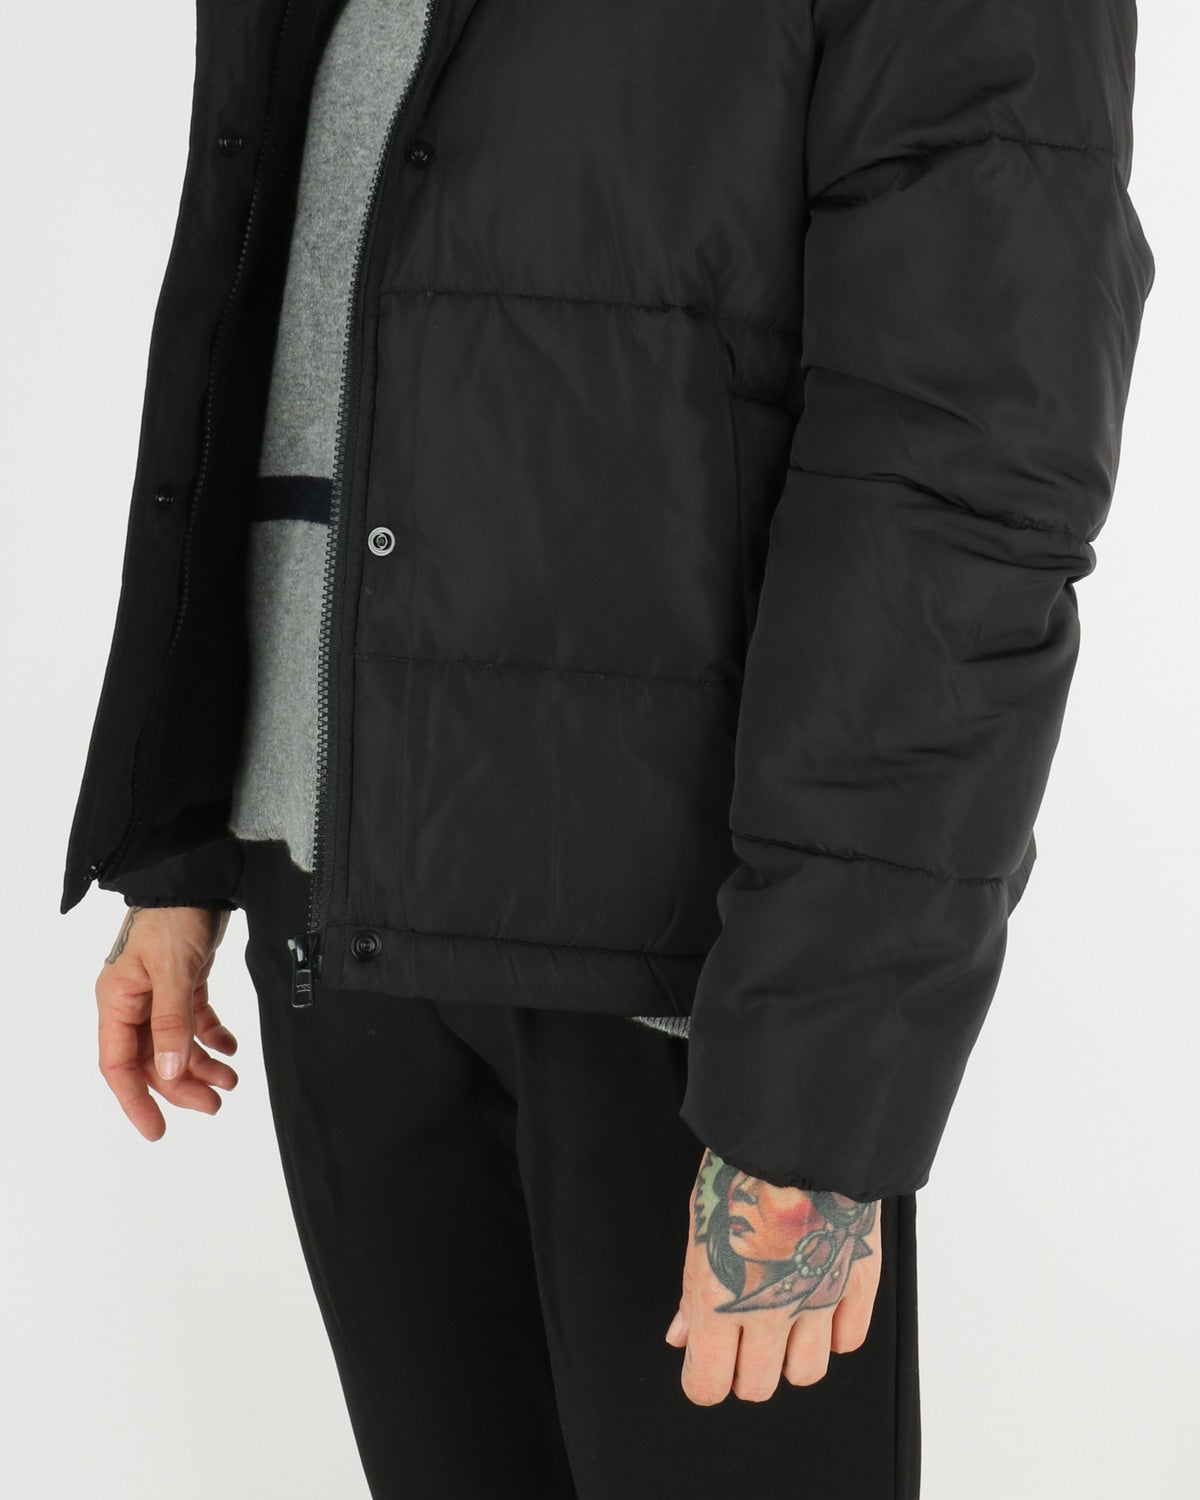 selfhood_puffer jacket 77126_black_5_5